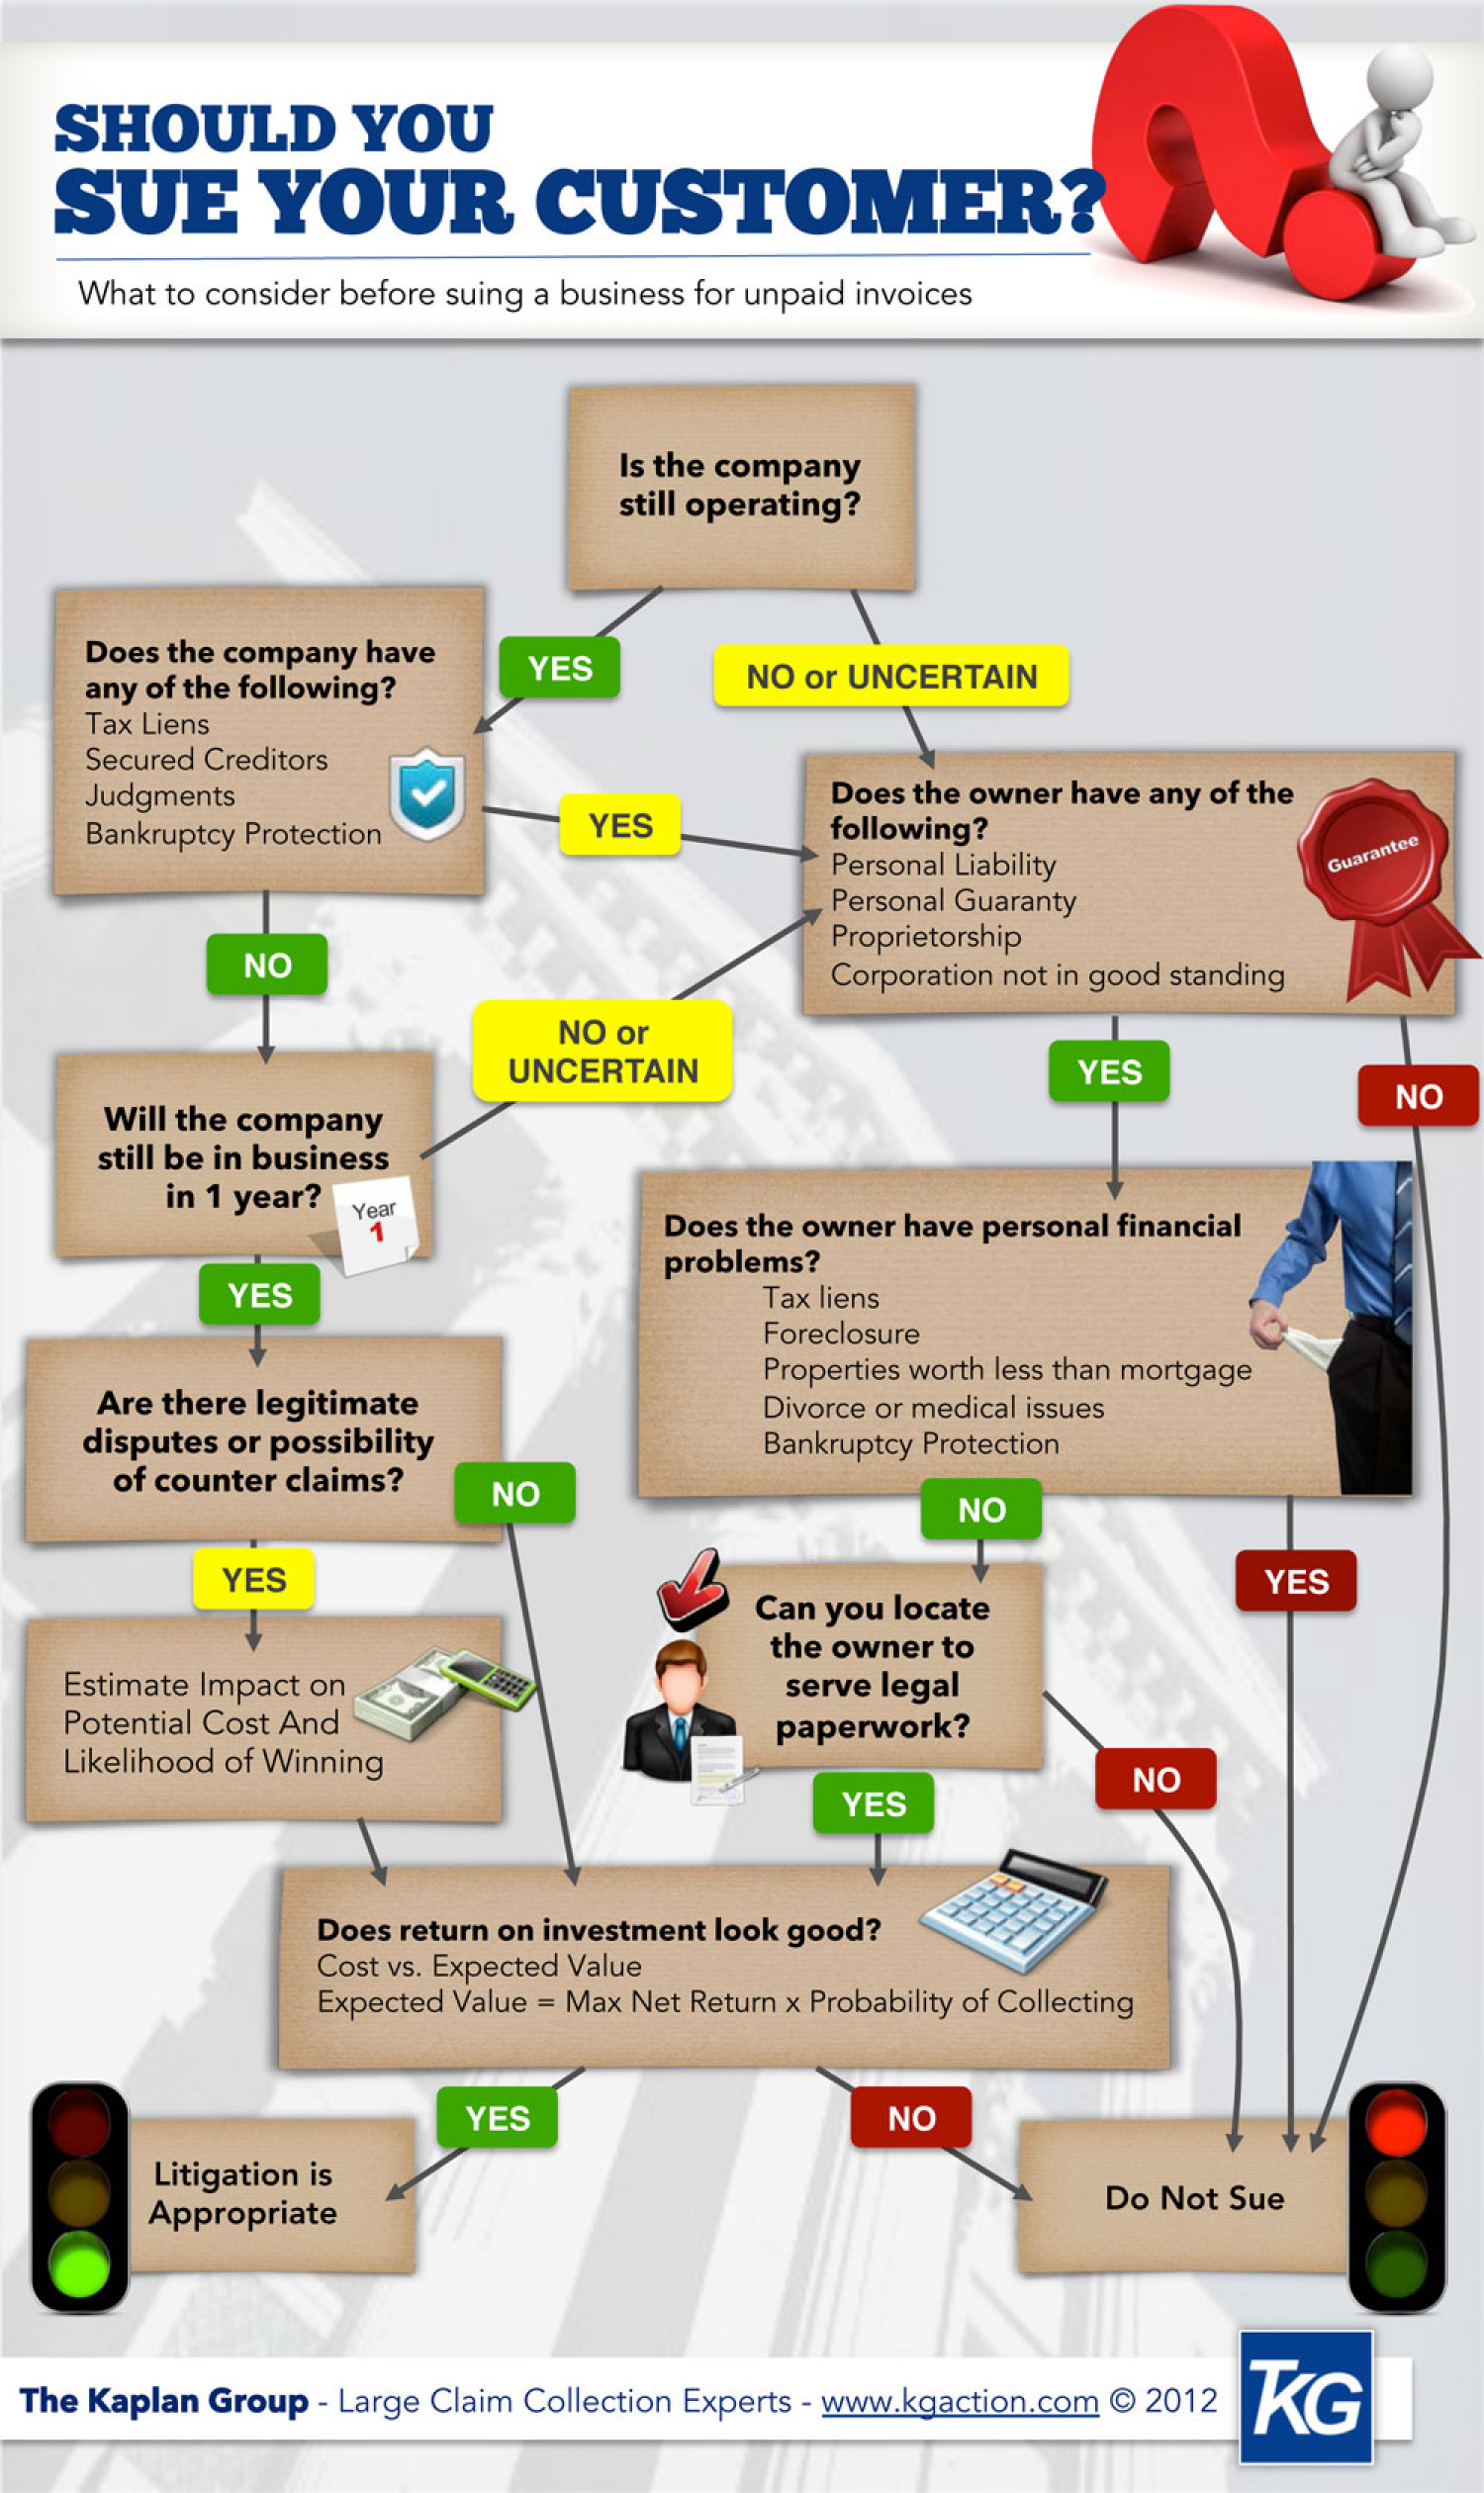 Should You Sue Your Customer? Infographic